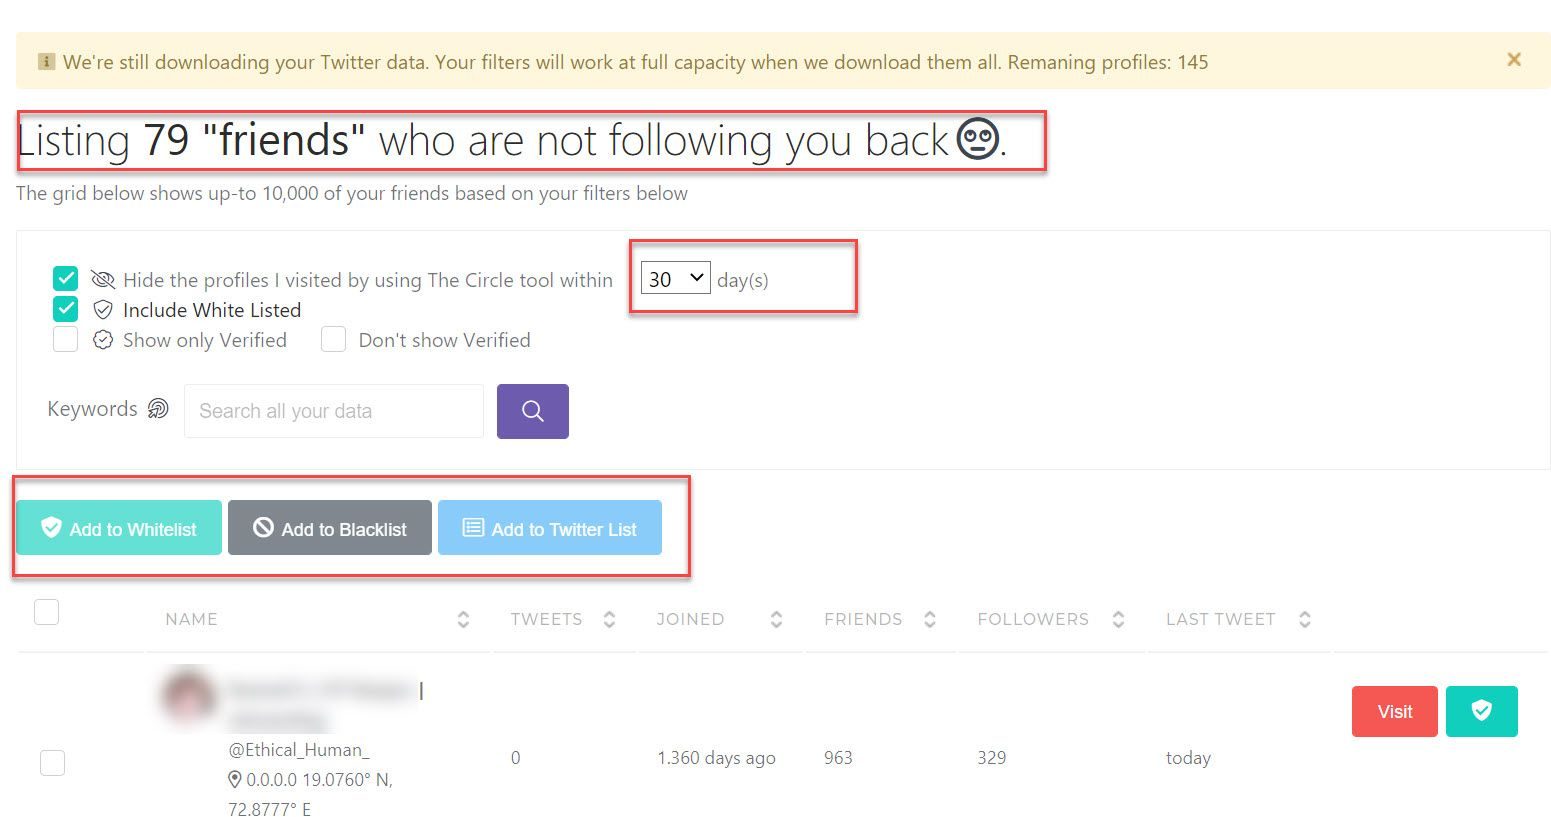 Find out those who are not following you back, filter them by keywords.